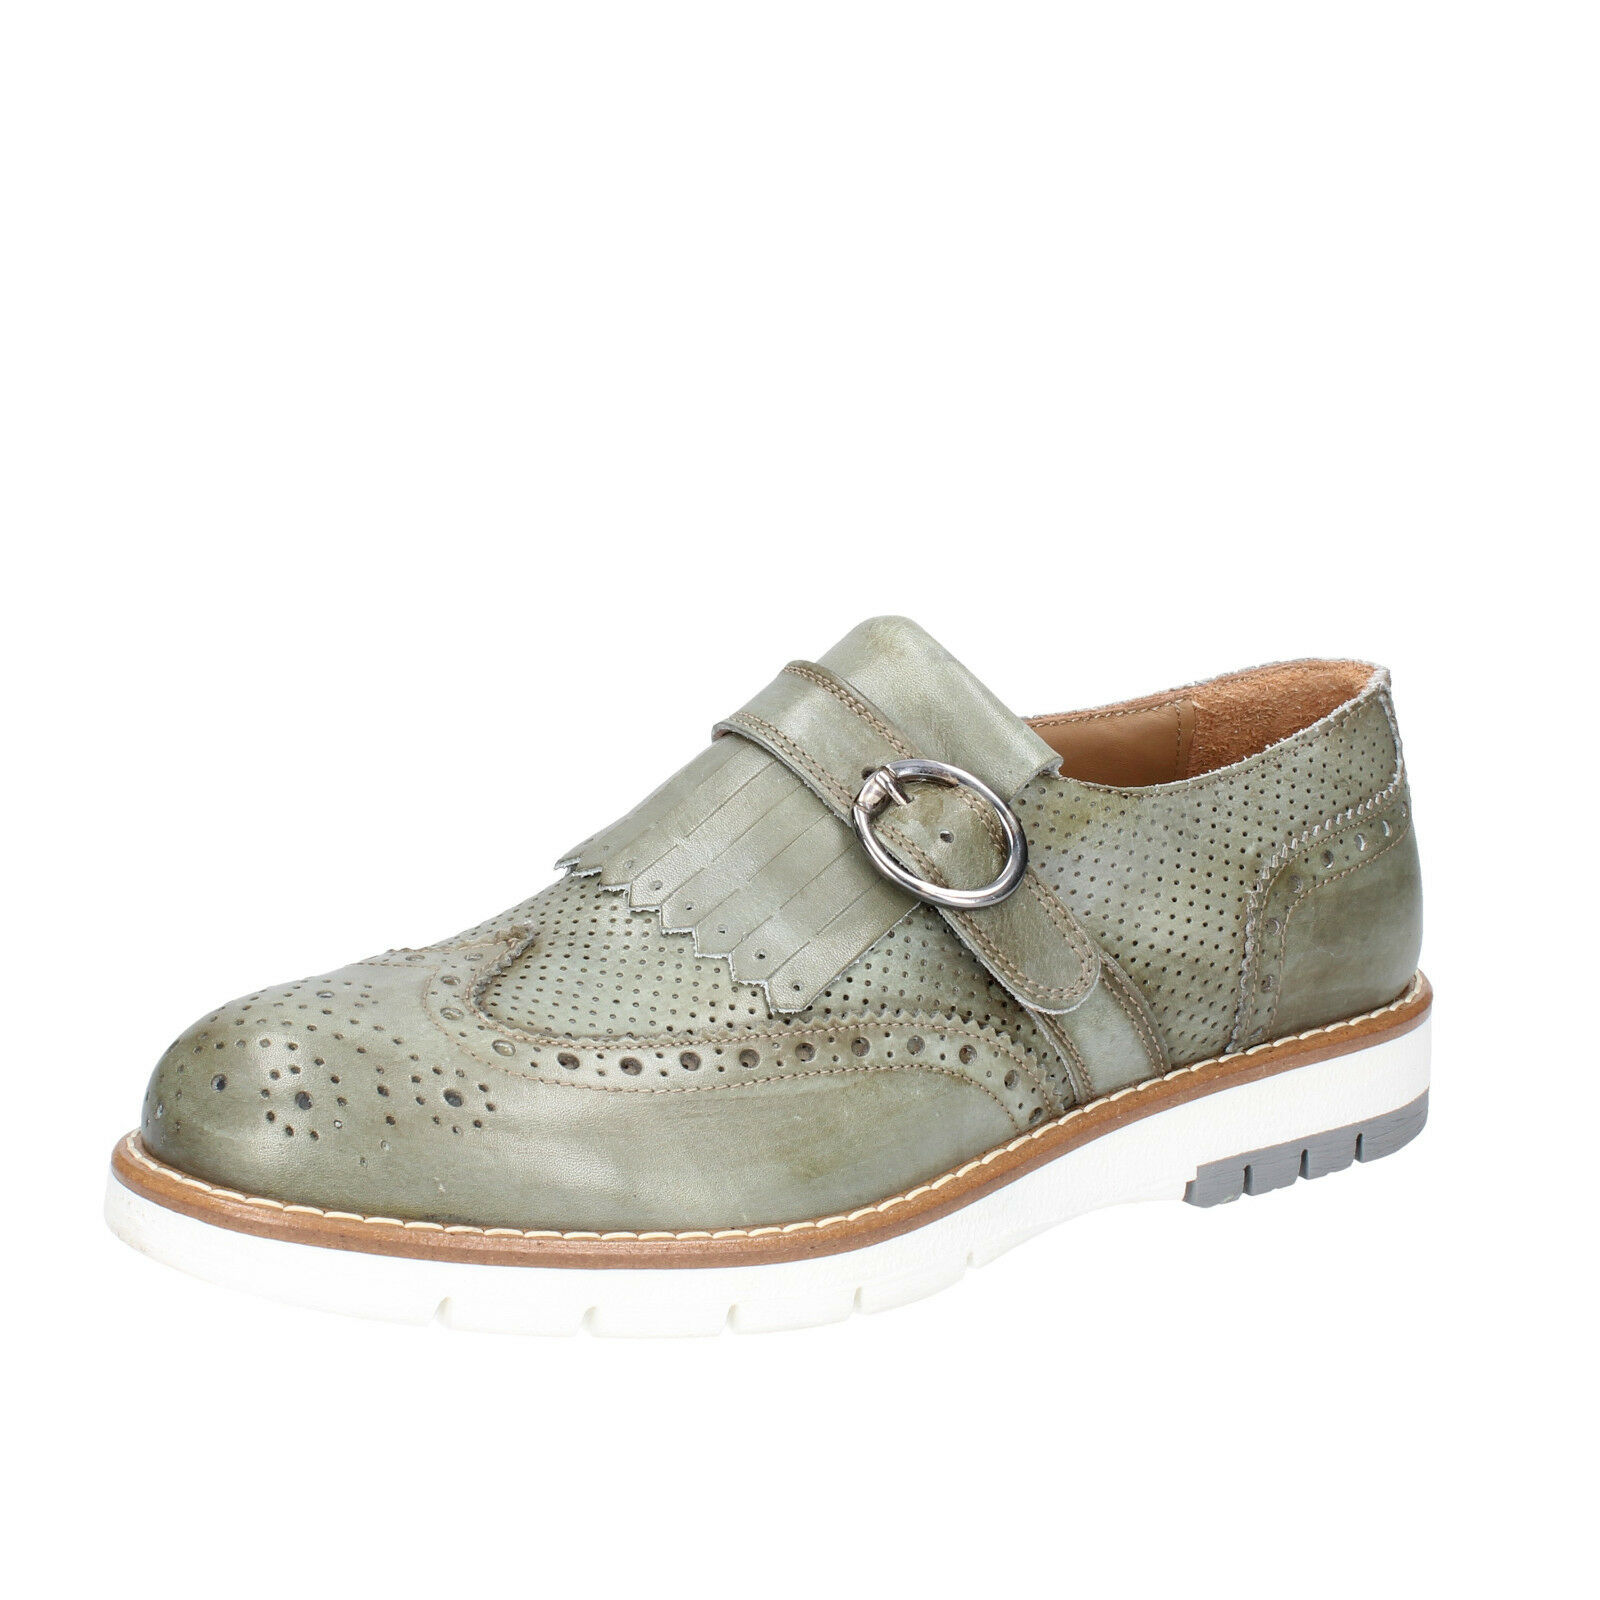 Men's shoes DI MELLA 12 () elegant green leather BZ30-G